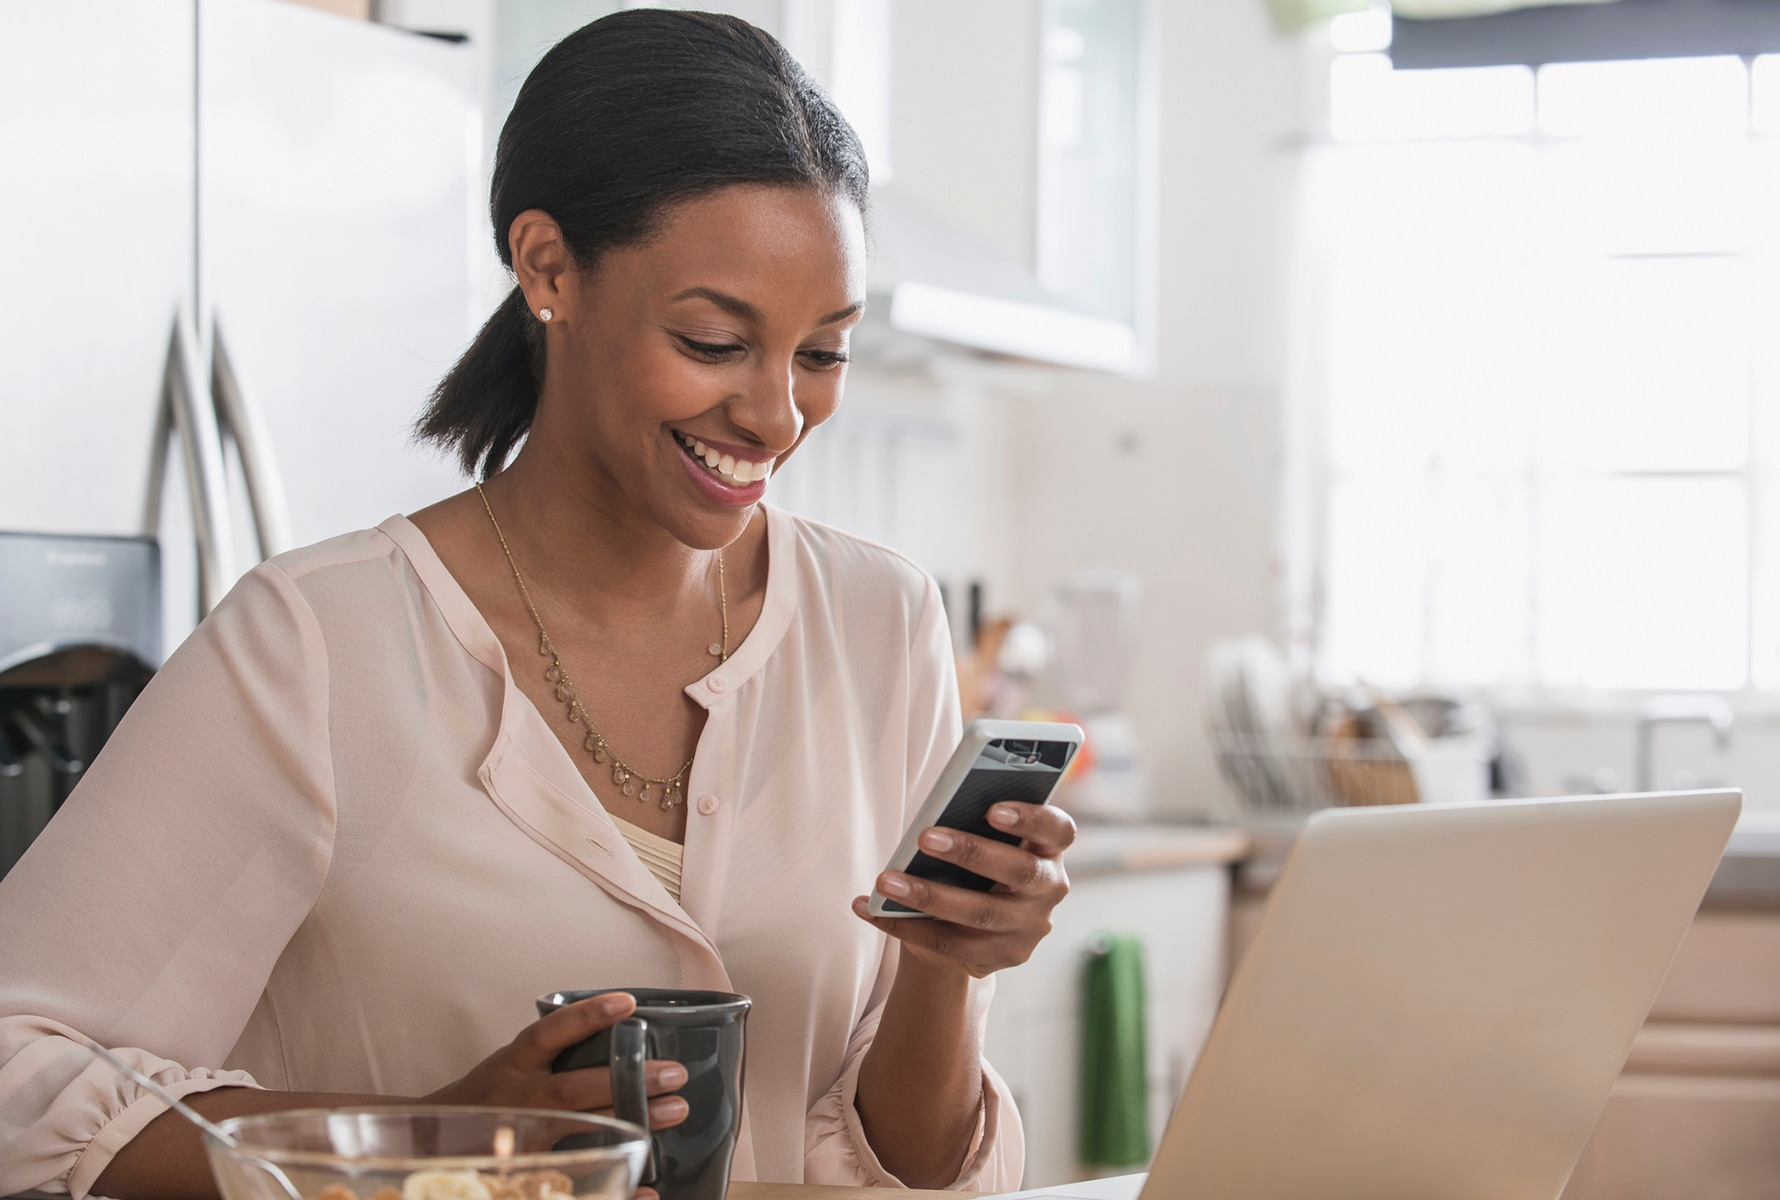 Woman sat in kitchen working smiling at phone